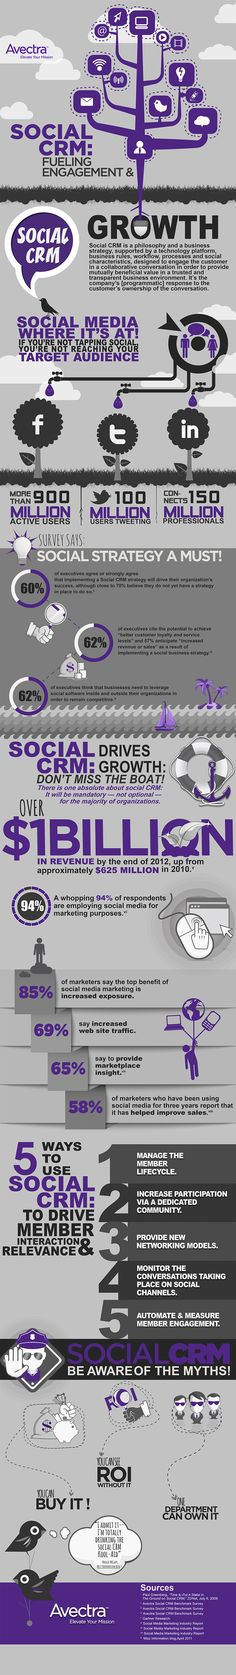 Social CRM Fuels Engagement and Growth Infographic #FlowConnection